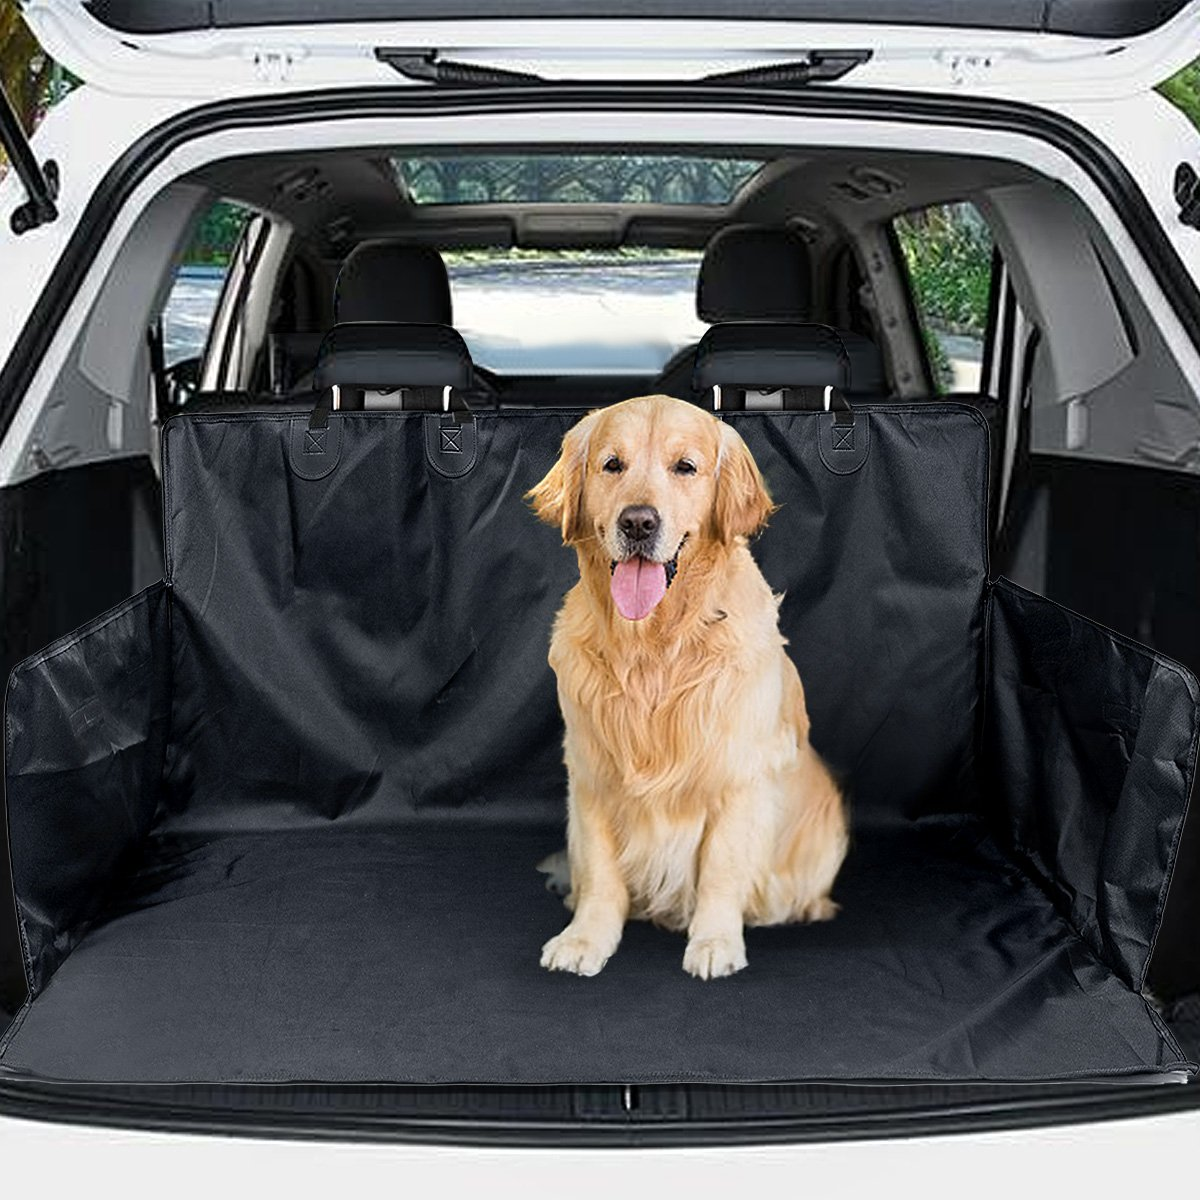 matcc housse de protection coffre pour chiens imperm able tapis chien ebay. Black Bedroom Furniture Sets. Home Design Ideas